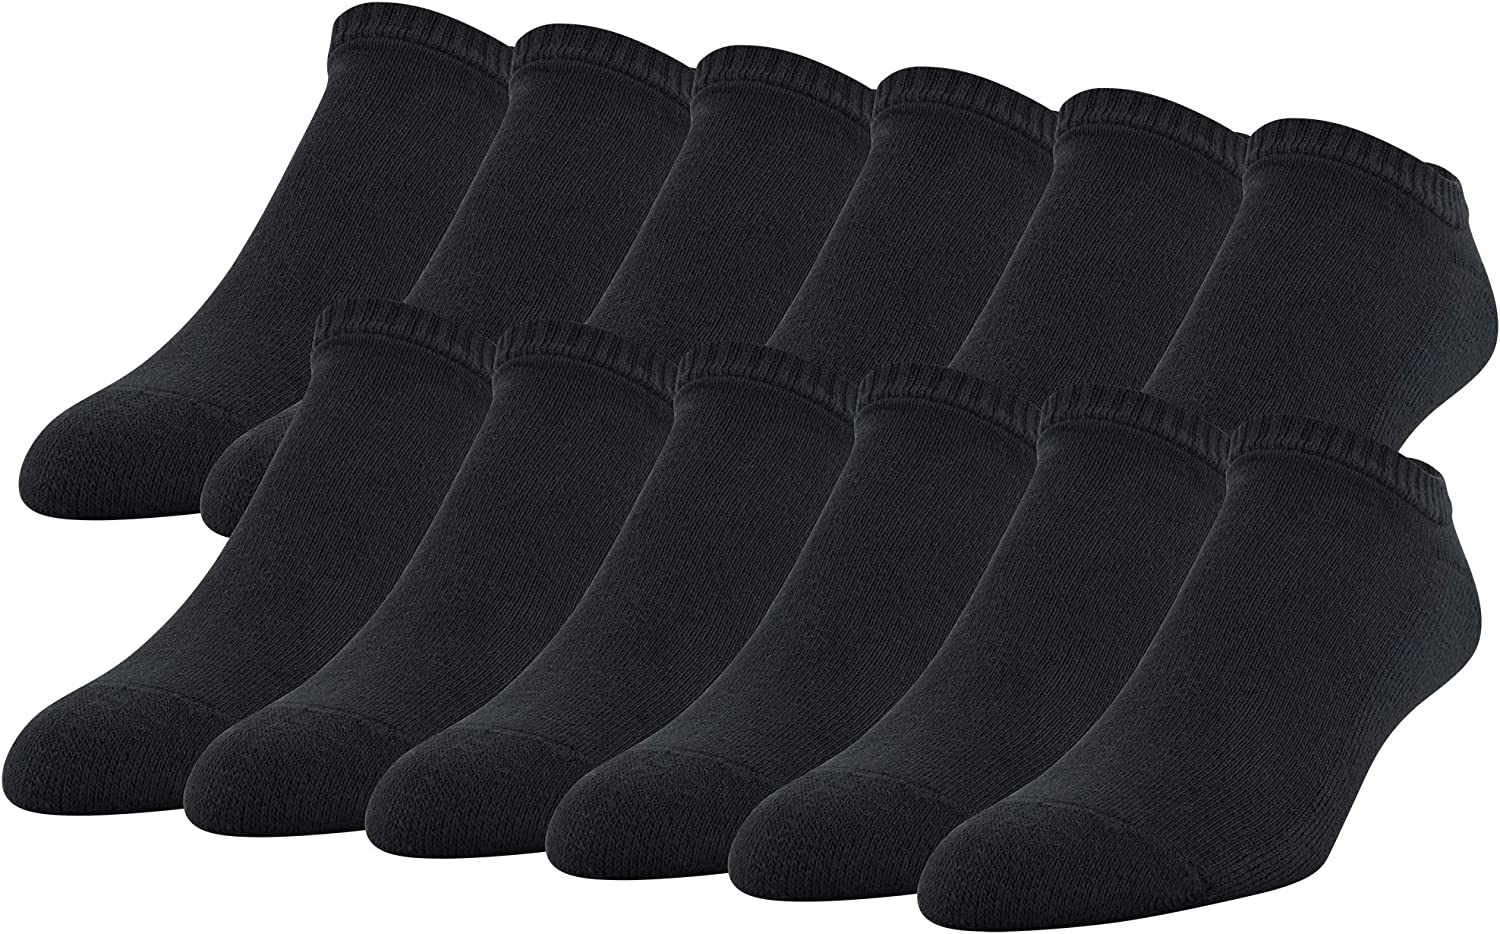 Gildan Men's Stretch Cotton Half Cushion No Show Socks, 12-Pack